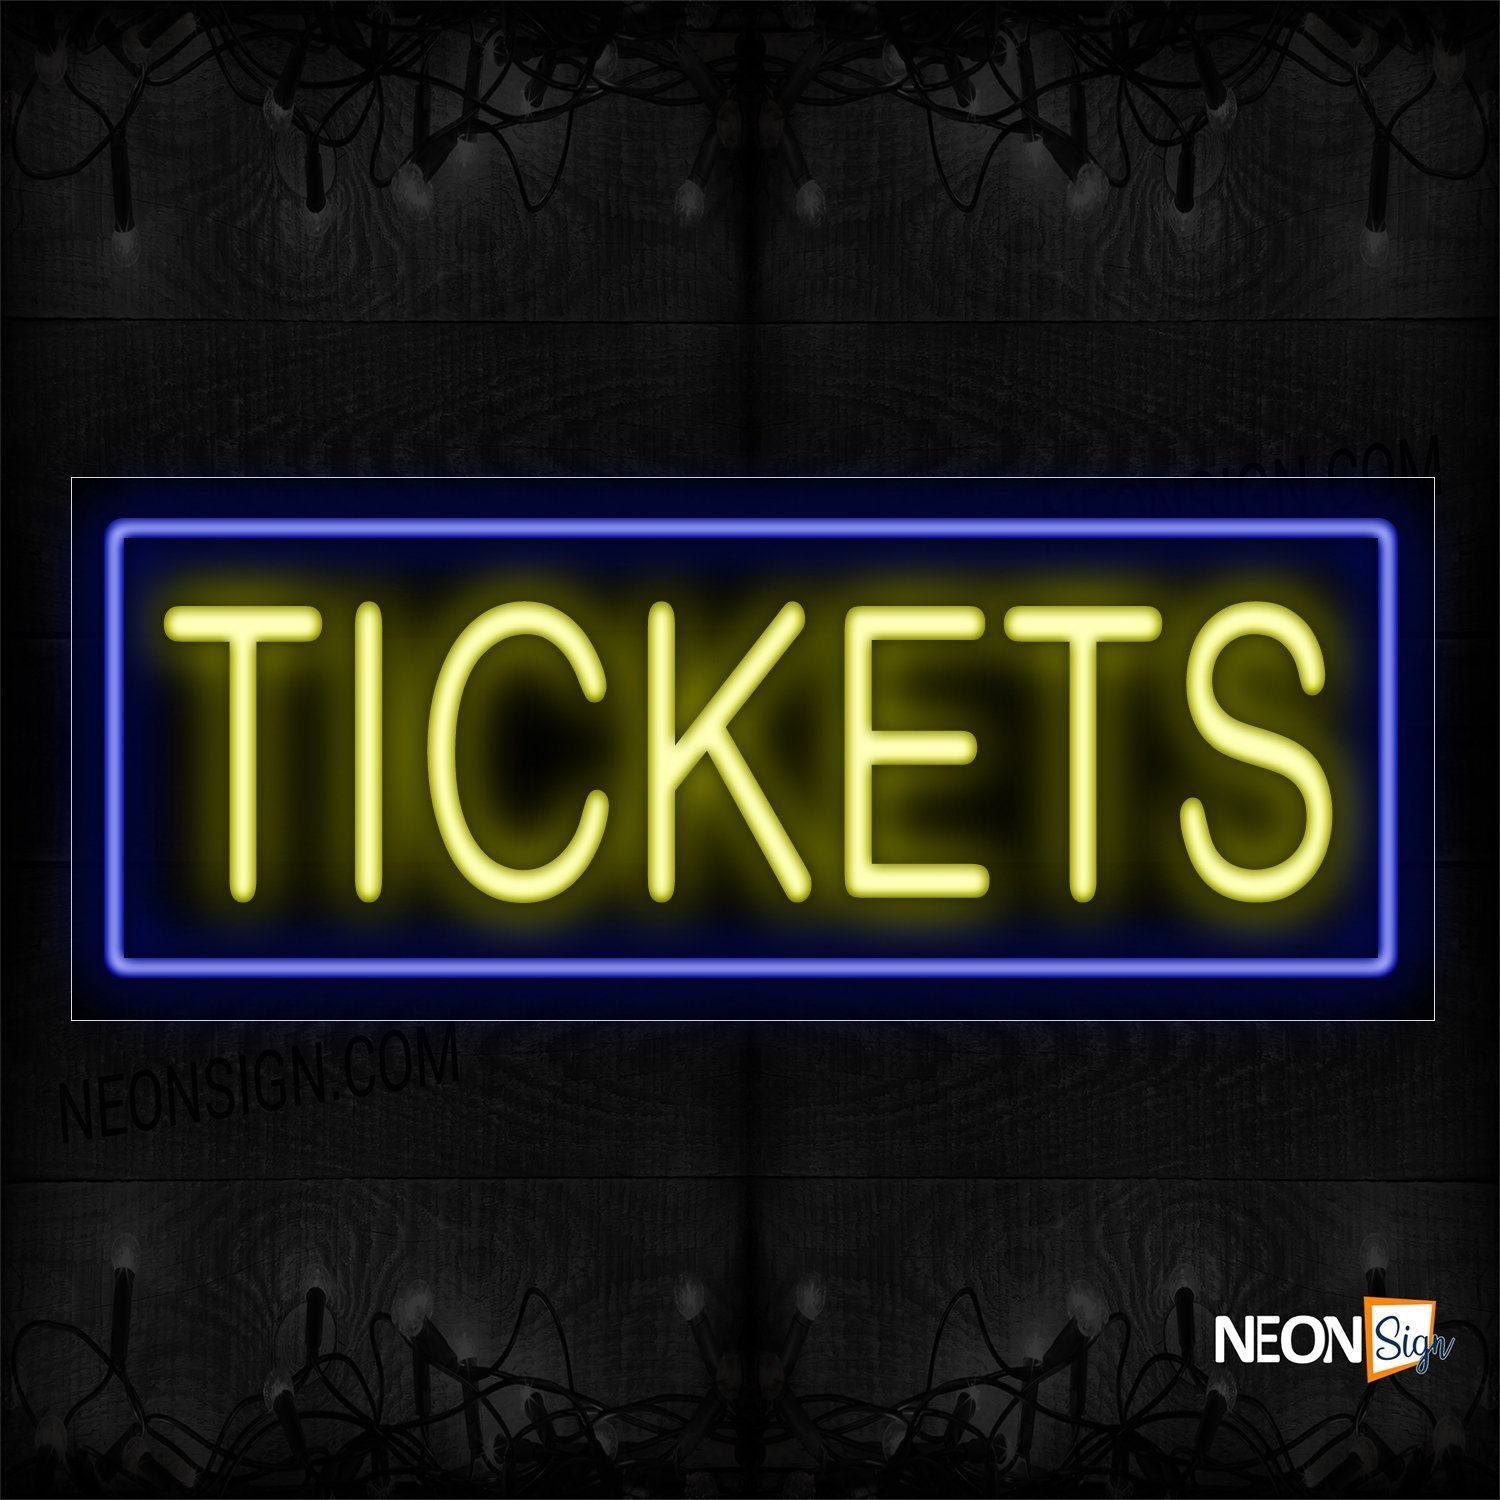 Image of 10301 Tickets In Yellow With Blue Border Neon Sign_13x32 Black Backing